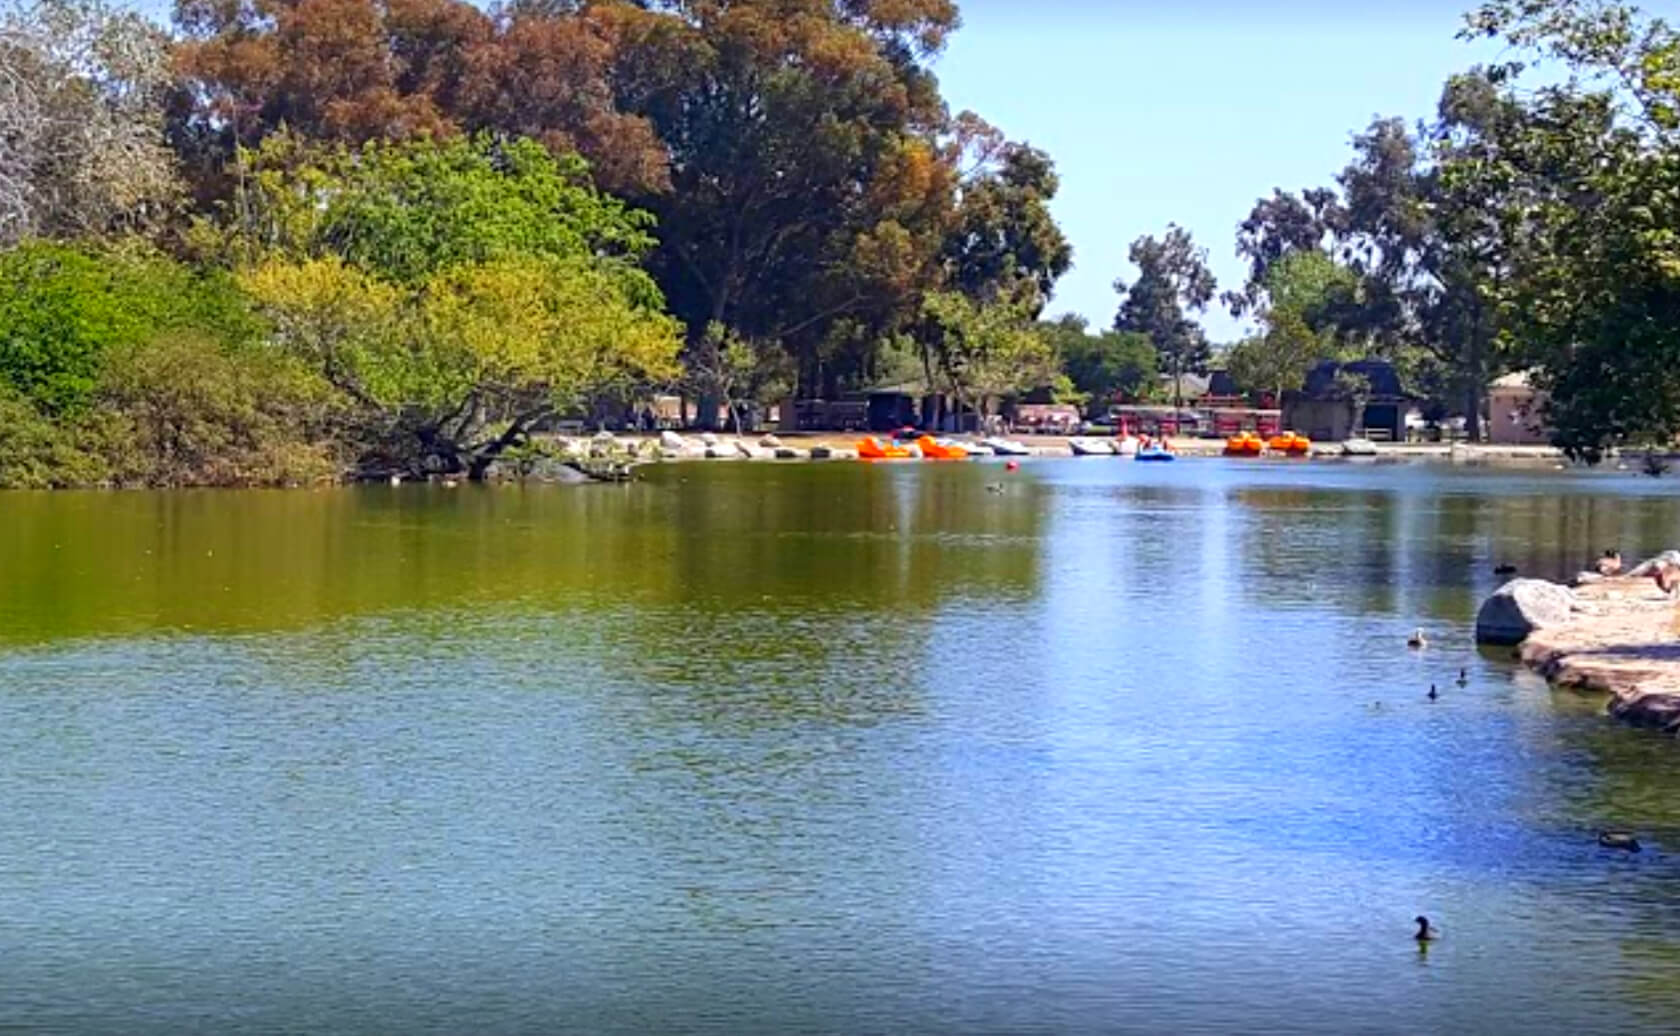 Mile-Square-Park-Lake-Fishing-Guide-Report-Fountain-Valley-CA-06